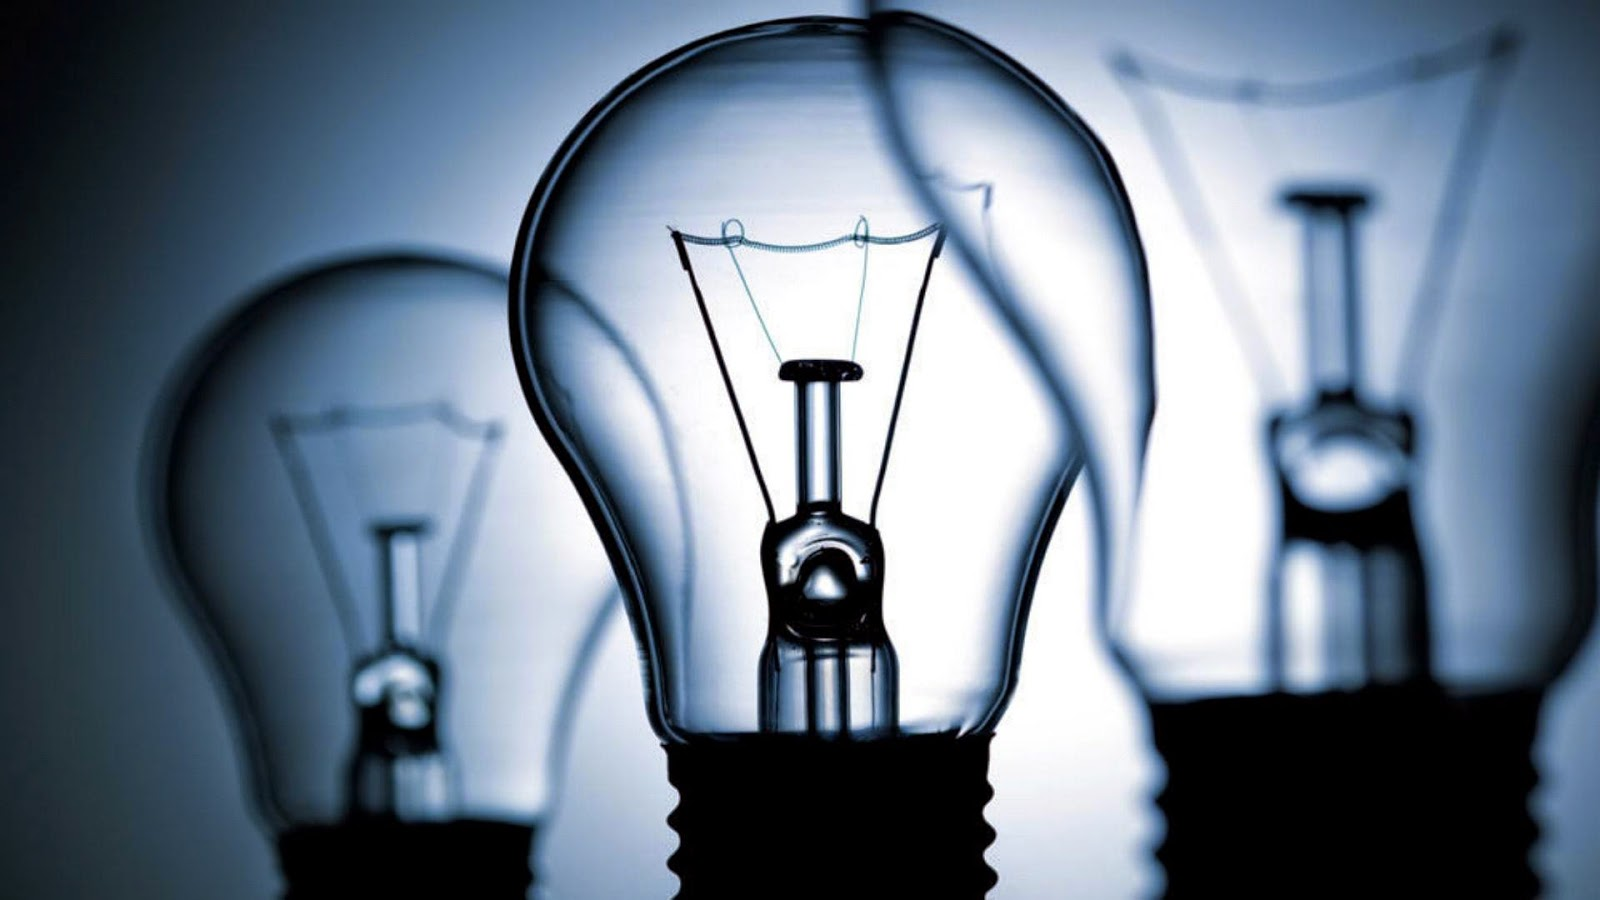 Light Bulbs Online Science Online Uses Of Light Bulbs And Their Structure